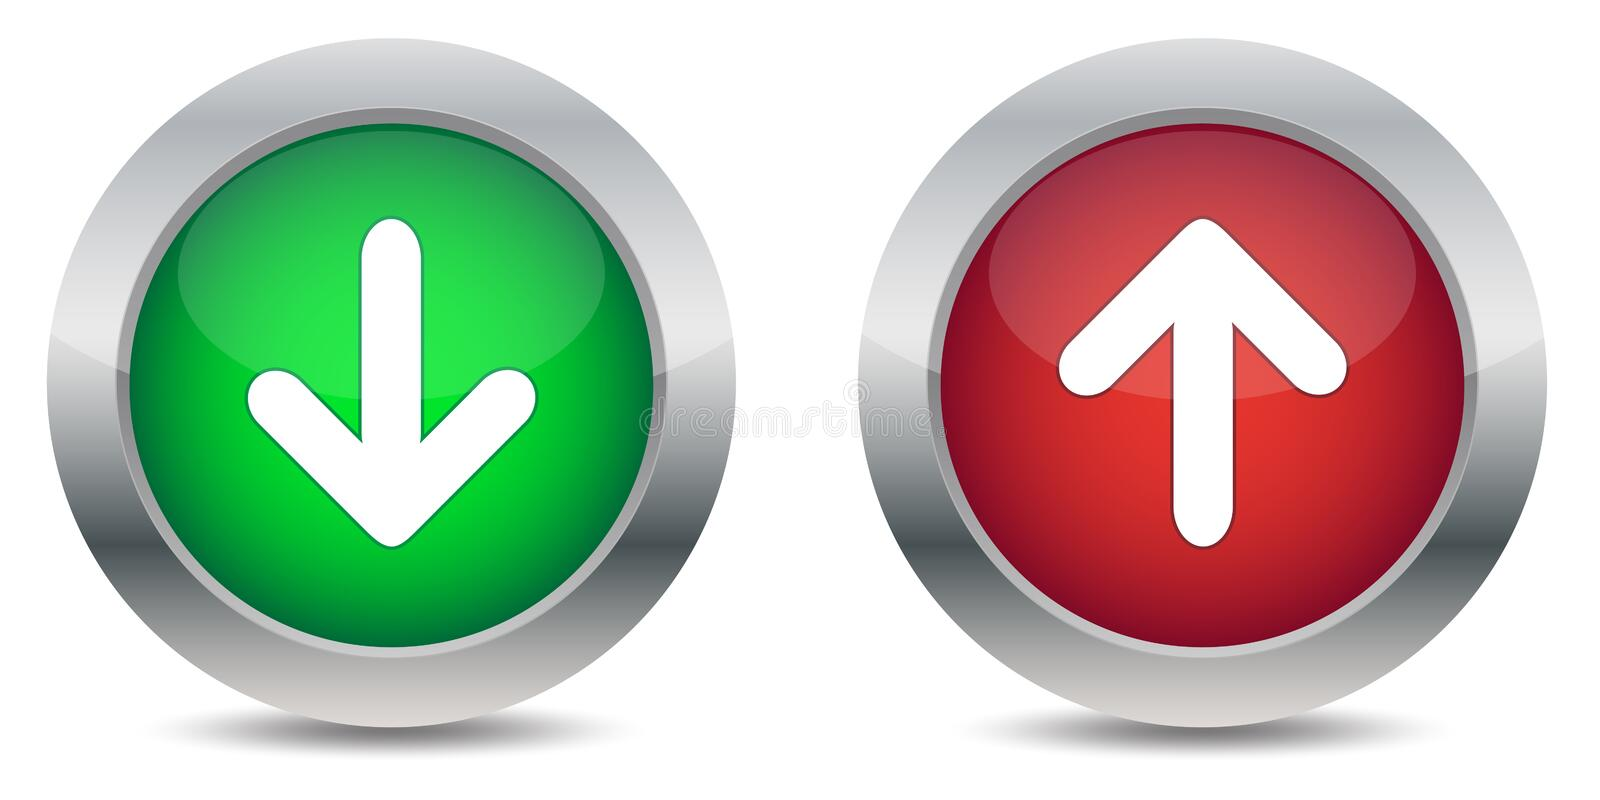 Download Download And Upload Buttons Stock Vector - Image: 22932519